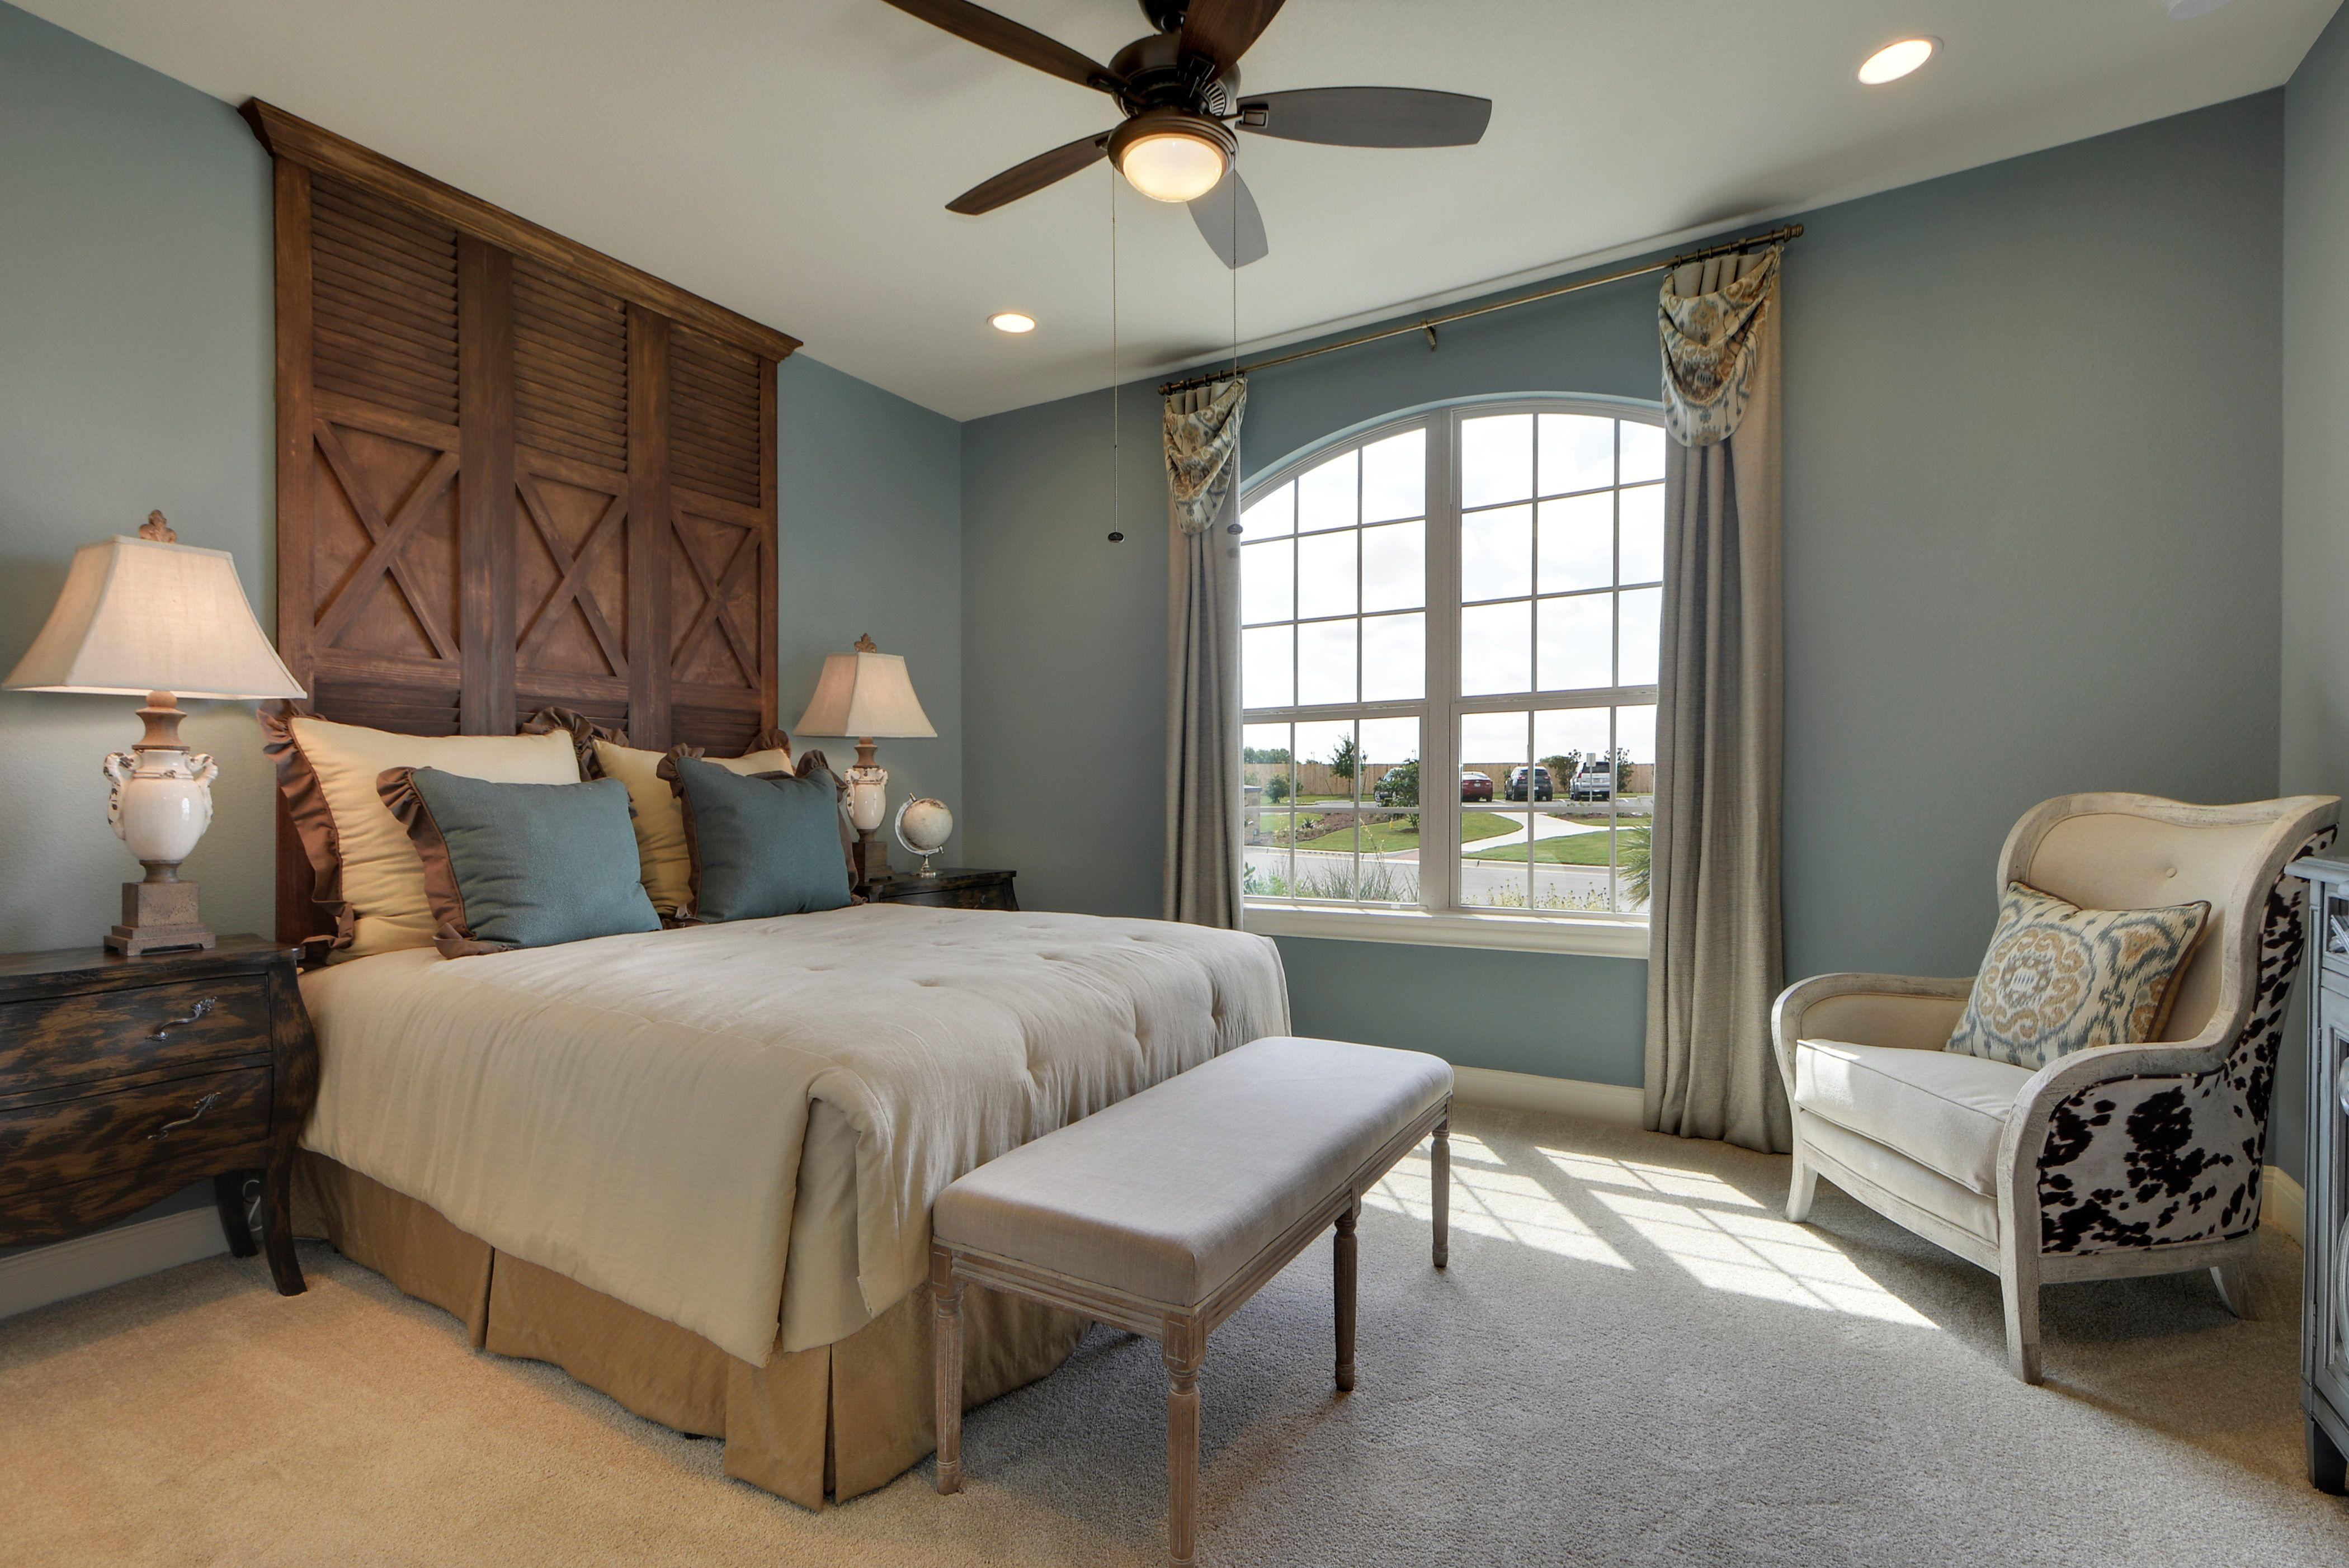 store south inspirations rock edinburg size tx corpus lfd austin bedroom full texas in round mcallen lacks marvelous alice stores ideas of victoria furniture picture definition